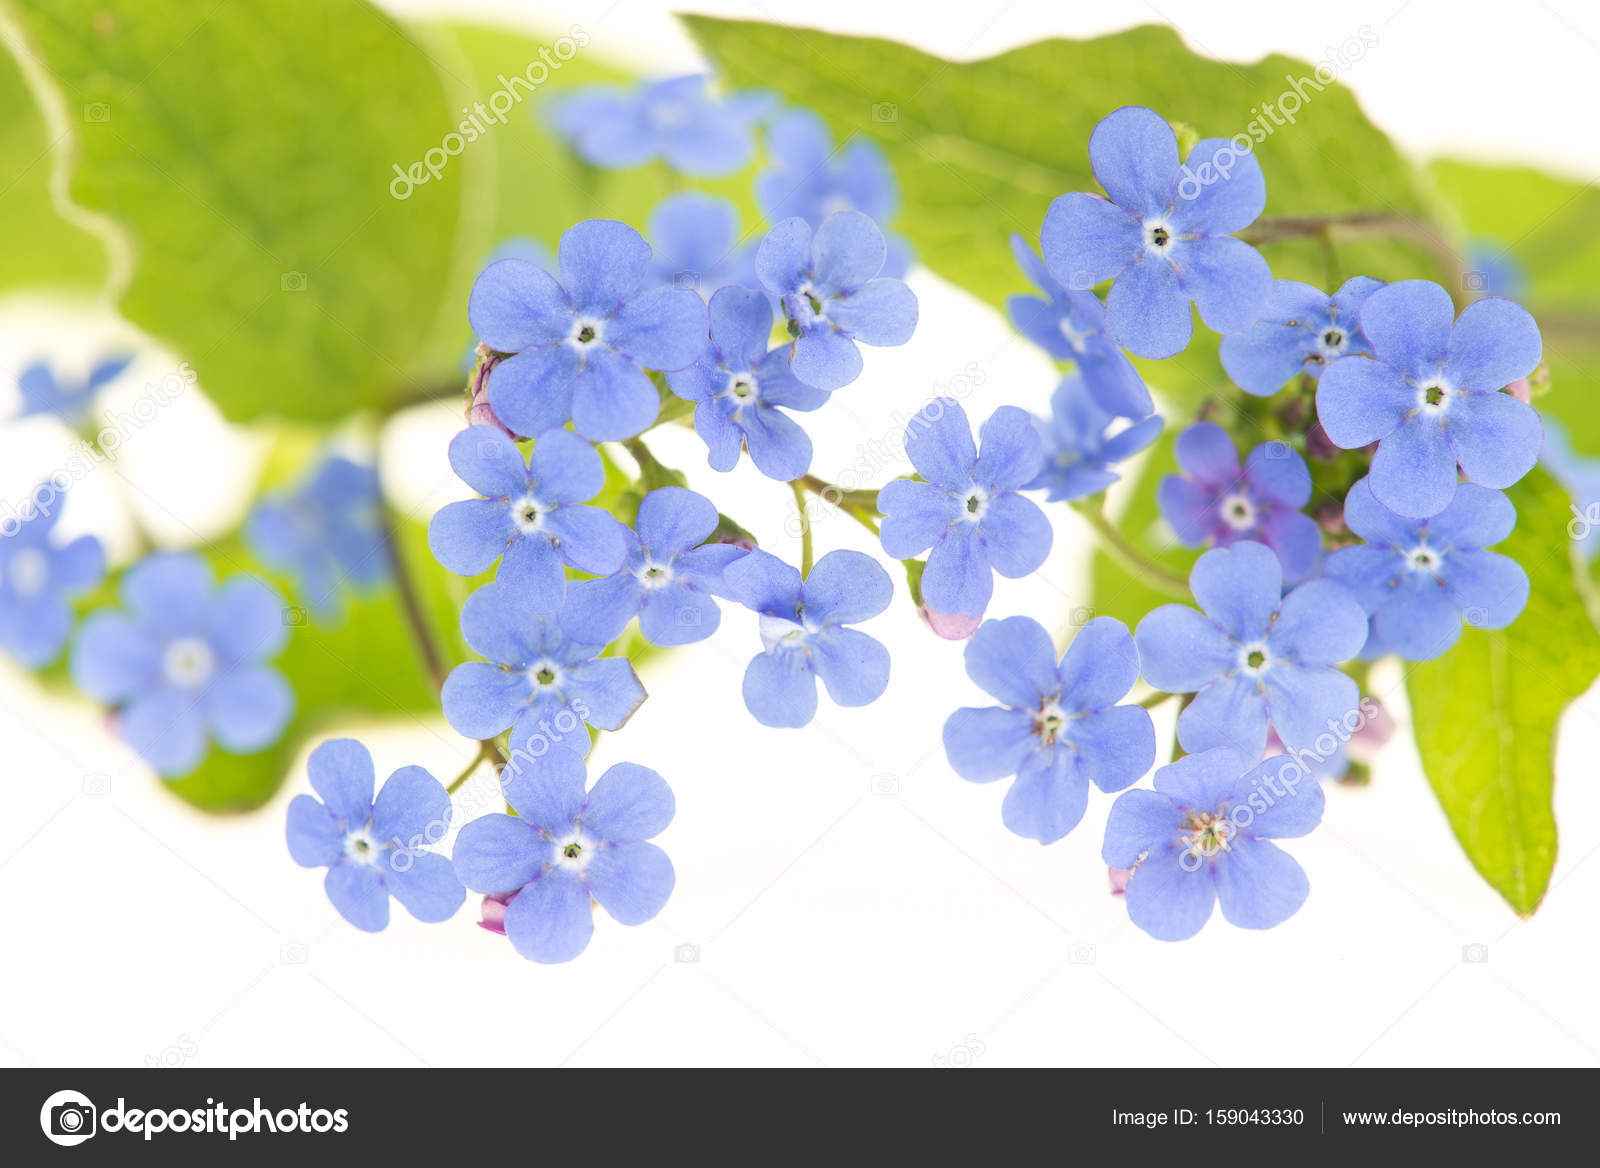 Forget Me Not Flowers With Green Leaves On A White Background